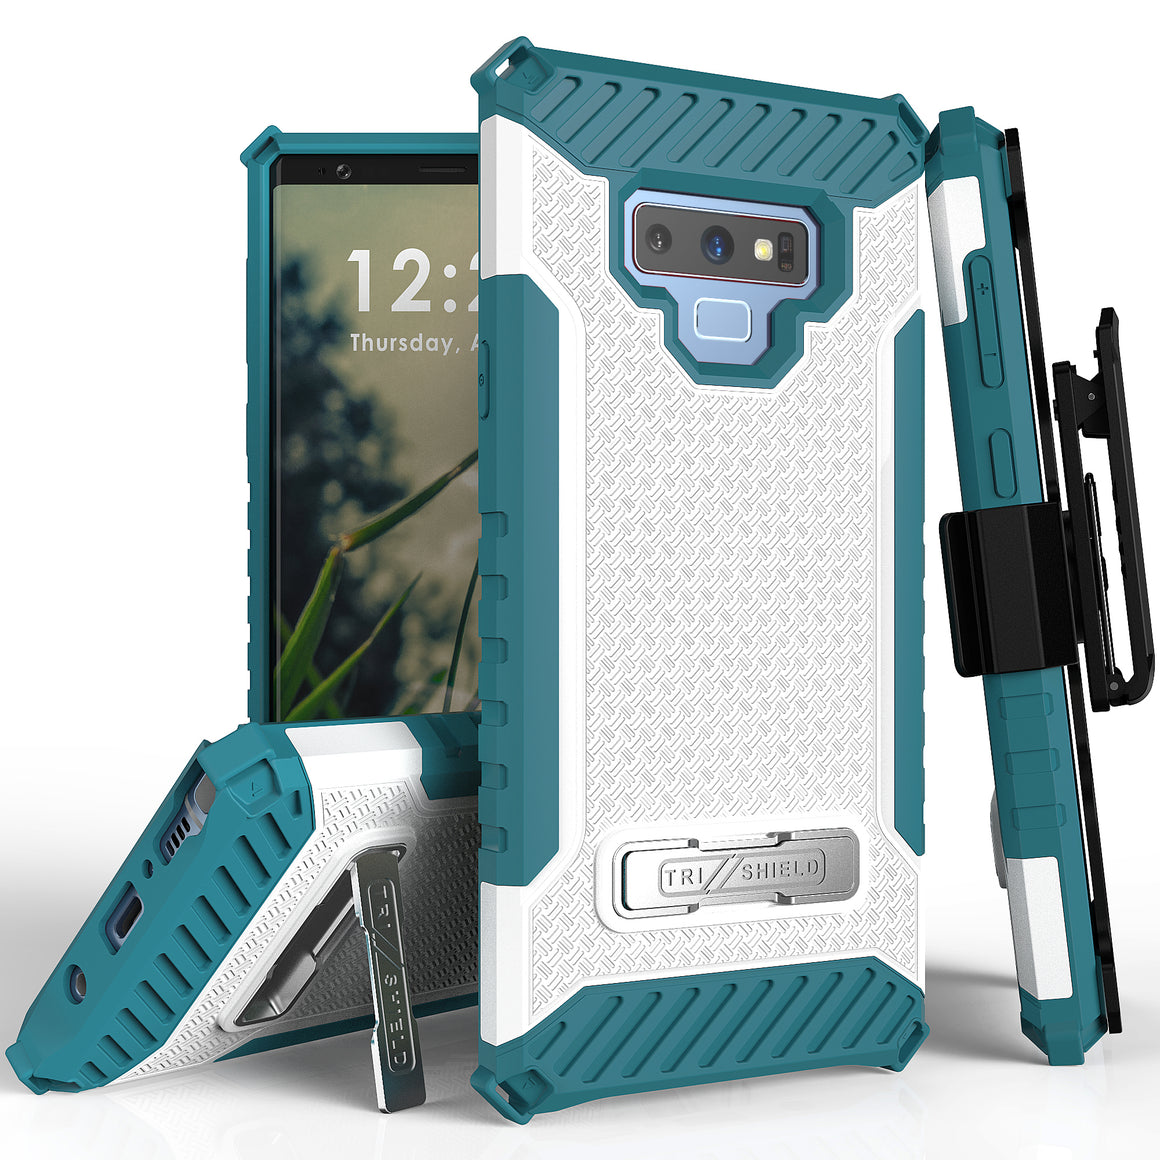 Tri Shield For Samsung Galaxy Note 9 White/Light Blue, TPU Case,Kickstand, With Belt Clip Holster,